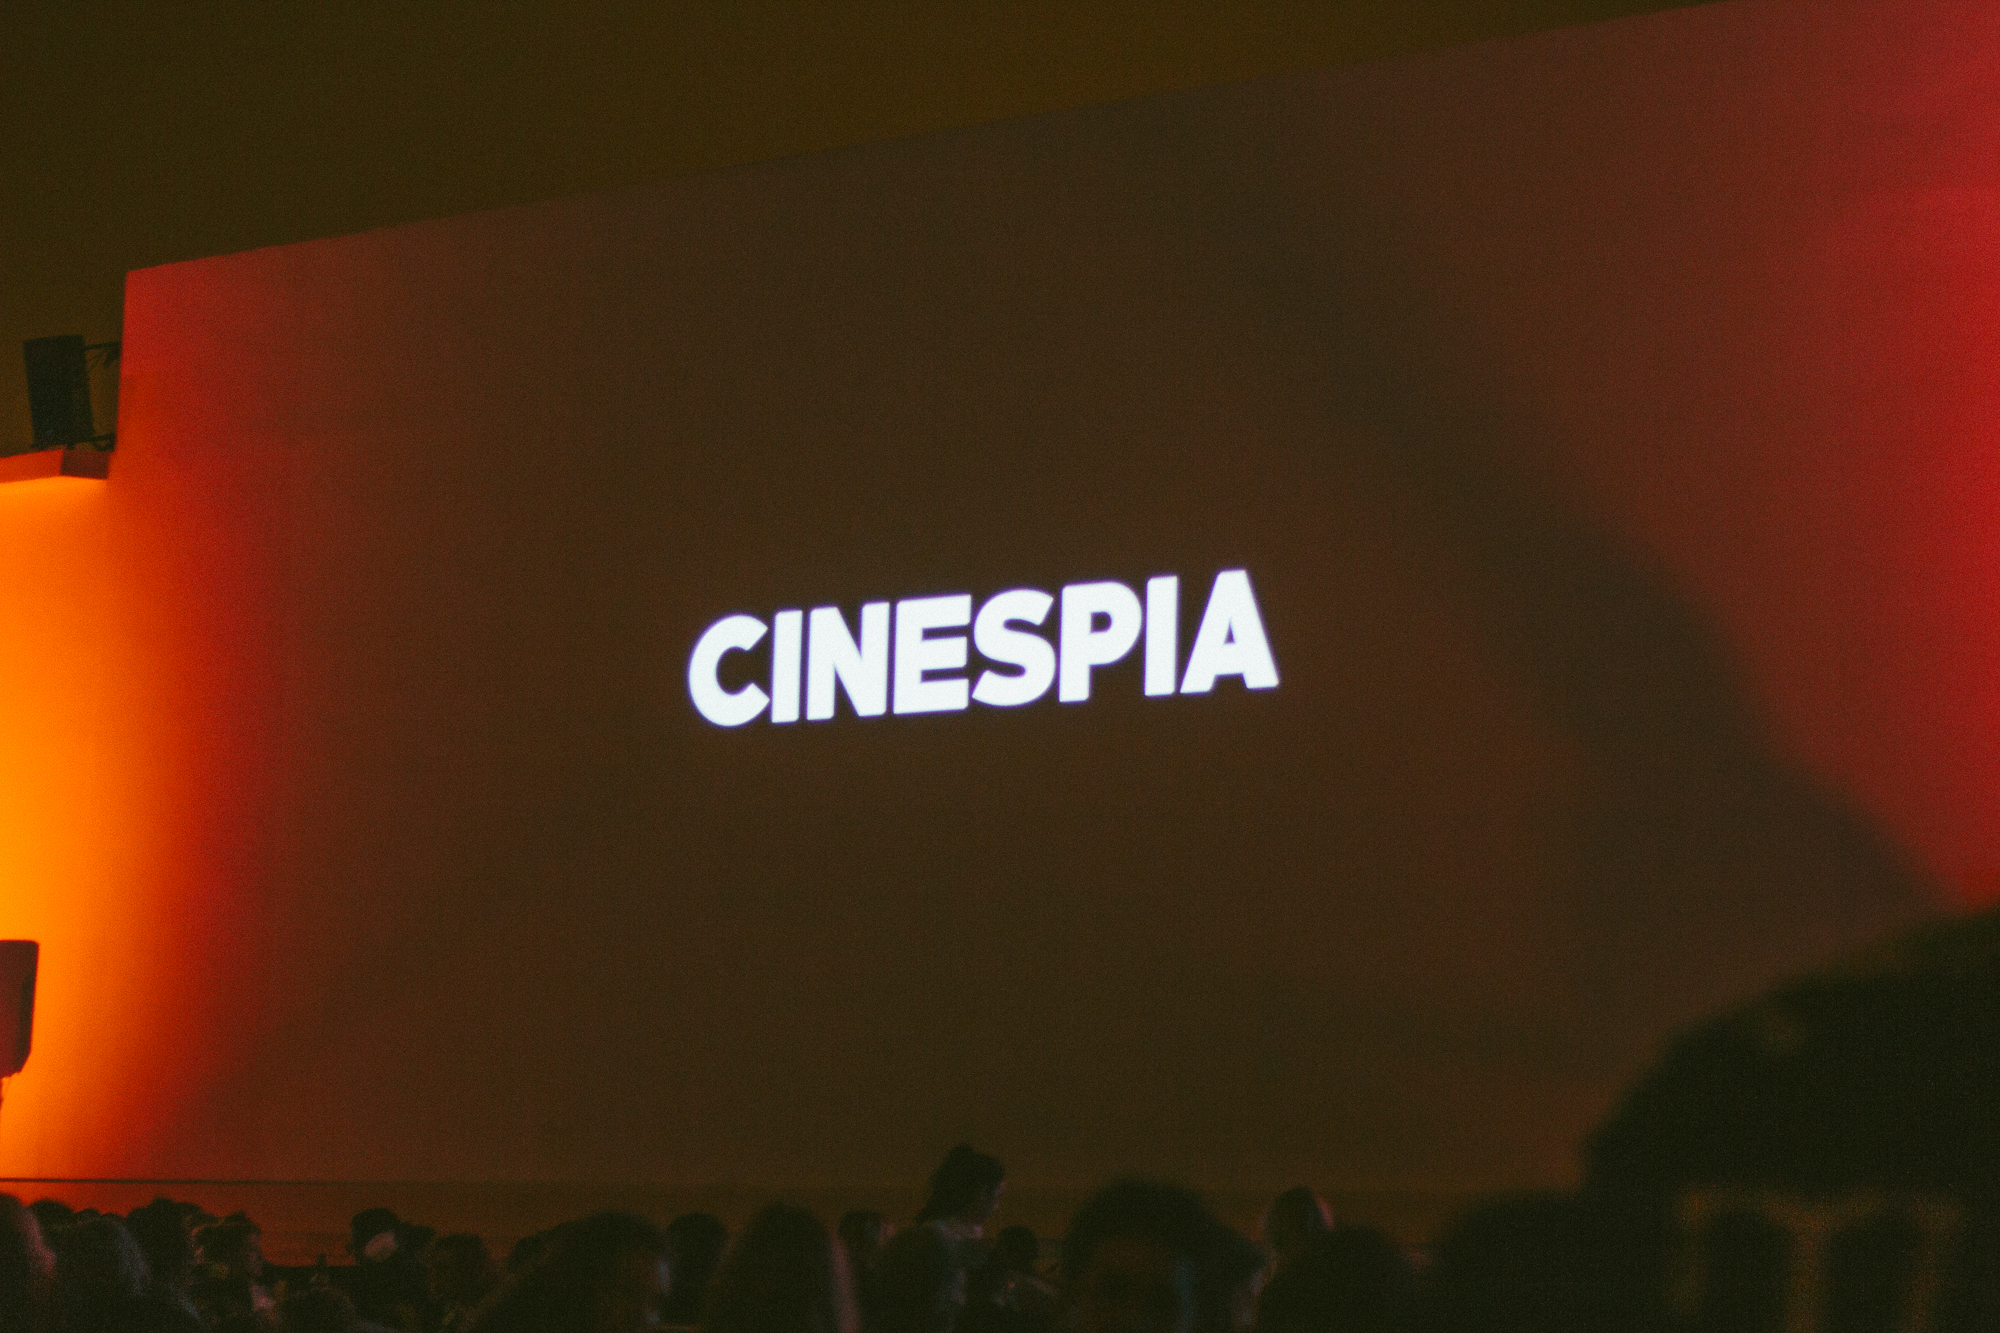 cinespia hollywood forever